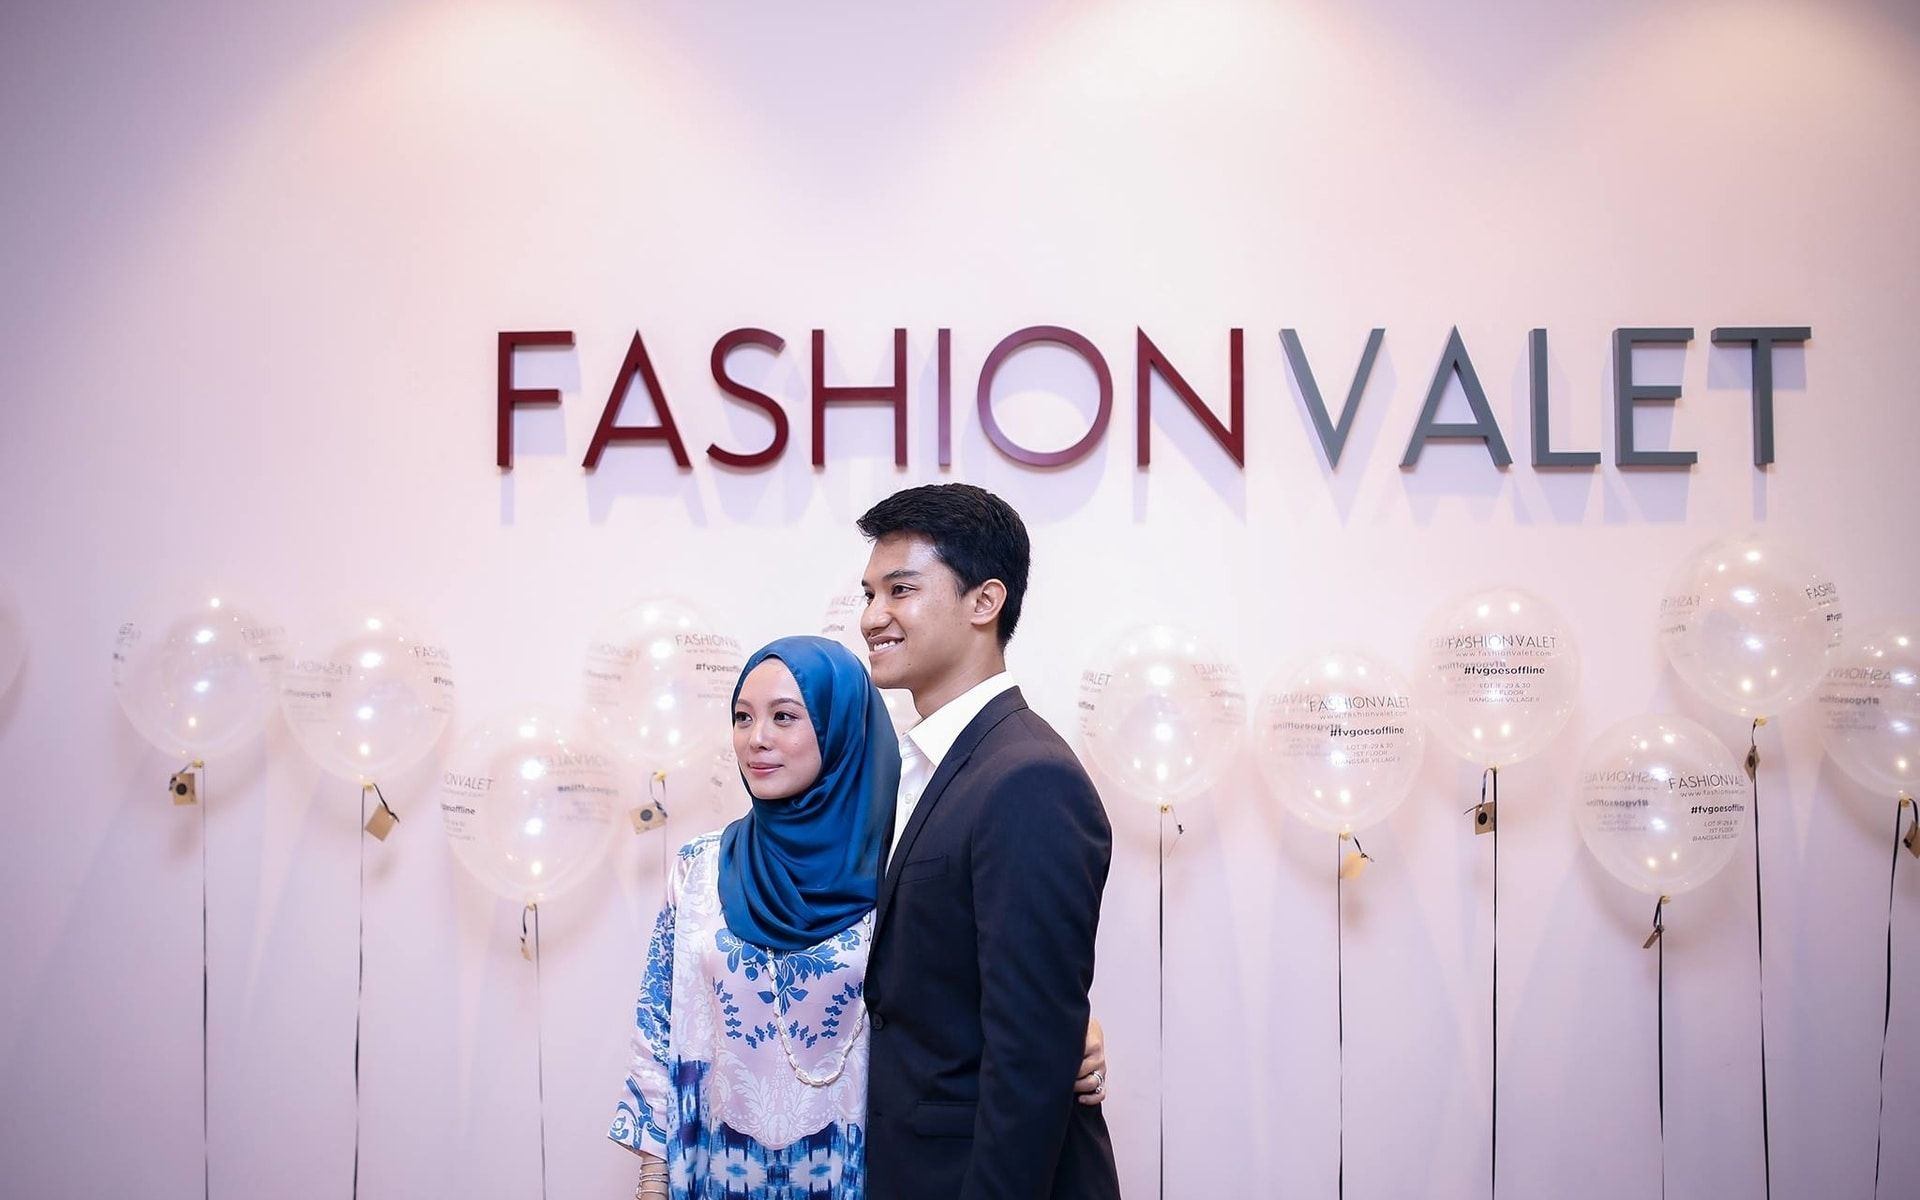 MGT300: Effectivess and Efficiency of FashionValet website